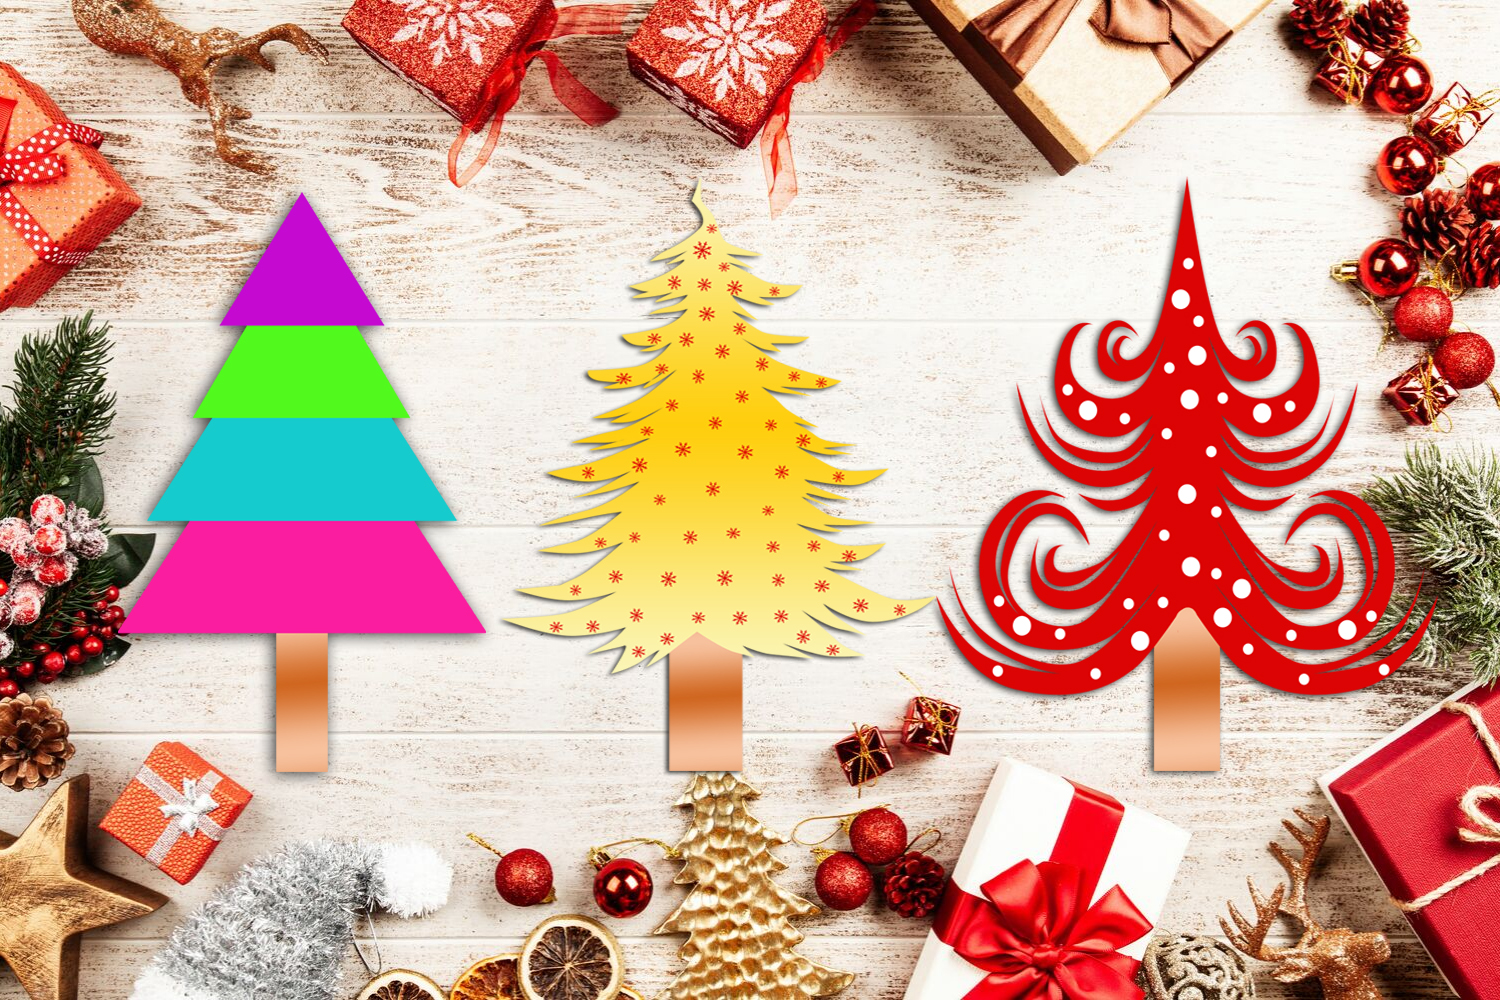 Cute Christmas Clipart- Cute Holiday Graphics Clipart example image 6